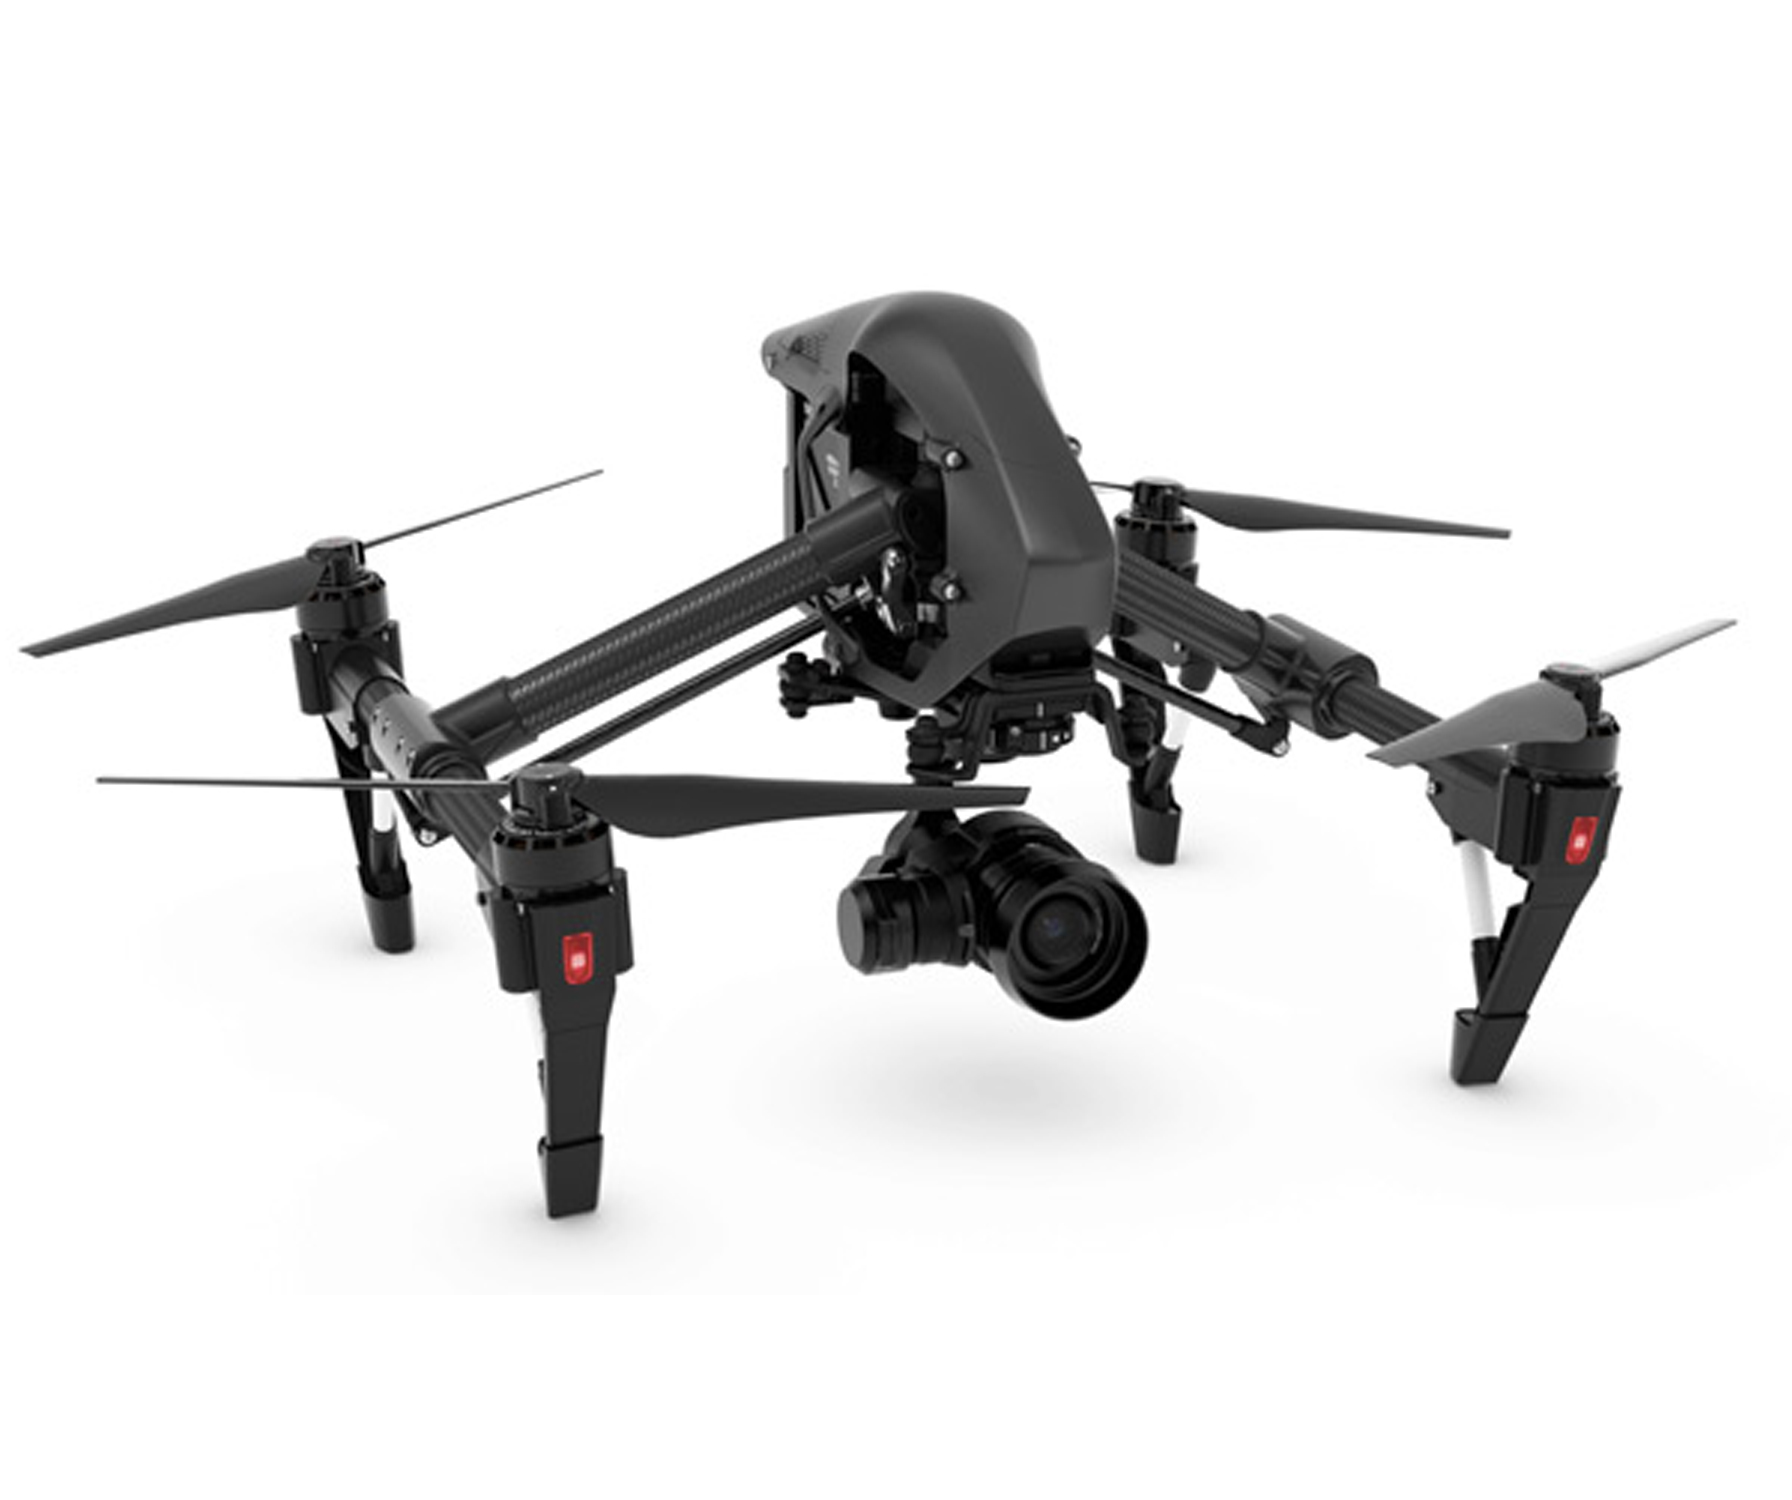 parrot drone 2 0 gps with Dji Inspire 1 Pro Black Edition Drone With Zenmuse X5 Mft 4k Camera And 3 Axis Gimbal System on Parrot Ar Drone 2 0 Flying Drone together with Cheerson Cx 10a Mini Modo Sin Cabeza 24g 4ch 6 Axis Rc Quadcopter Nano Zumbido Ufo 3 Velocidades Seleccionablesnegro 0 0 further Best Drones With Cameras also 1124 Drone Xk X380 Nacelle Brushless 2 Axes likewise Elefante Roca E Mordedor Chicco 20696231.